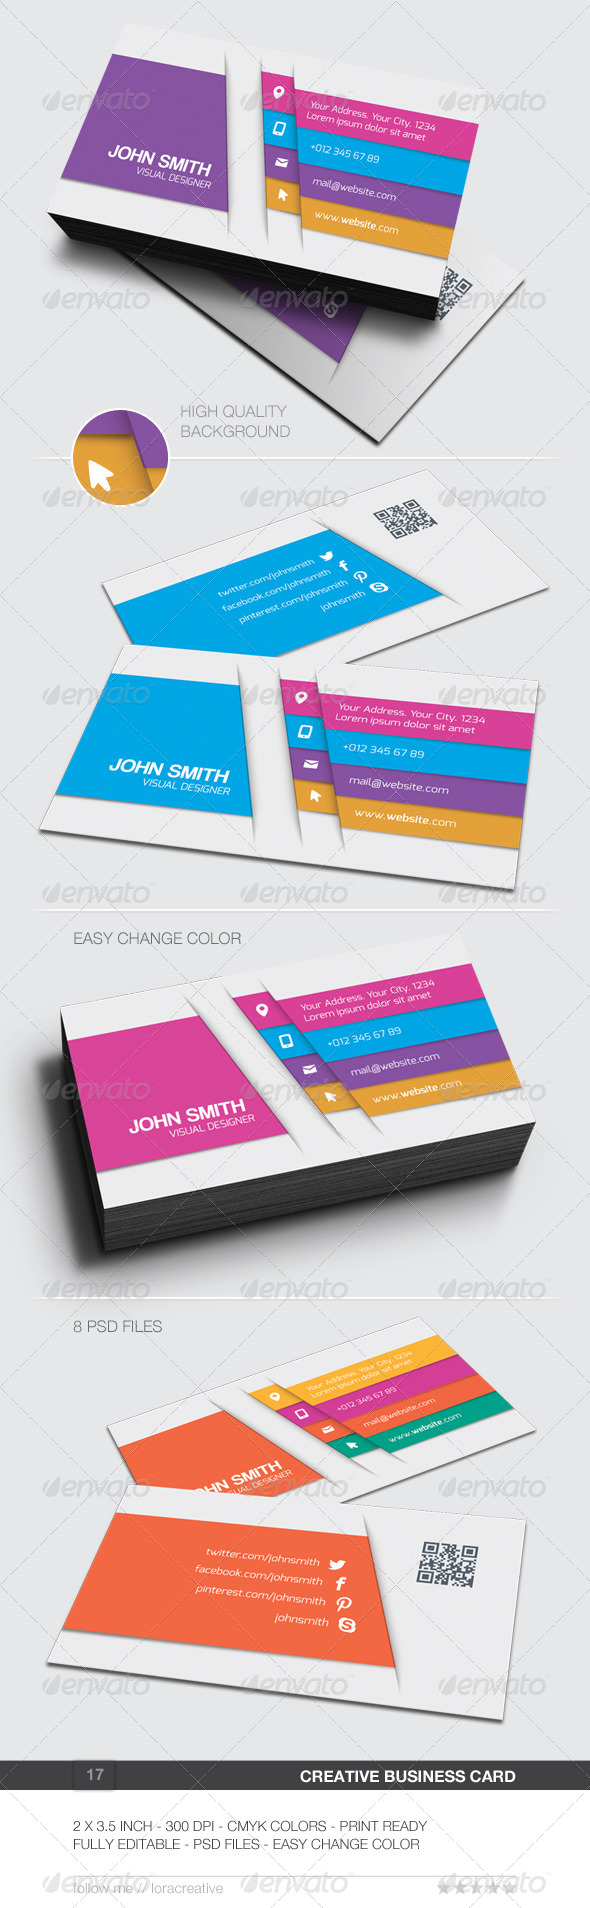 GraphicRiver Creative Business Card 17 6202019